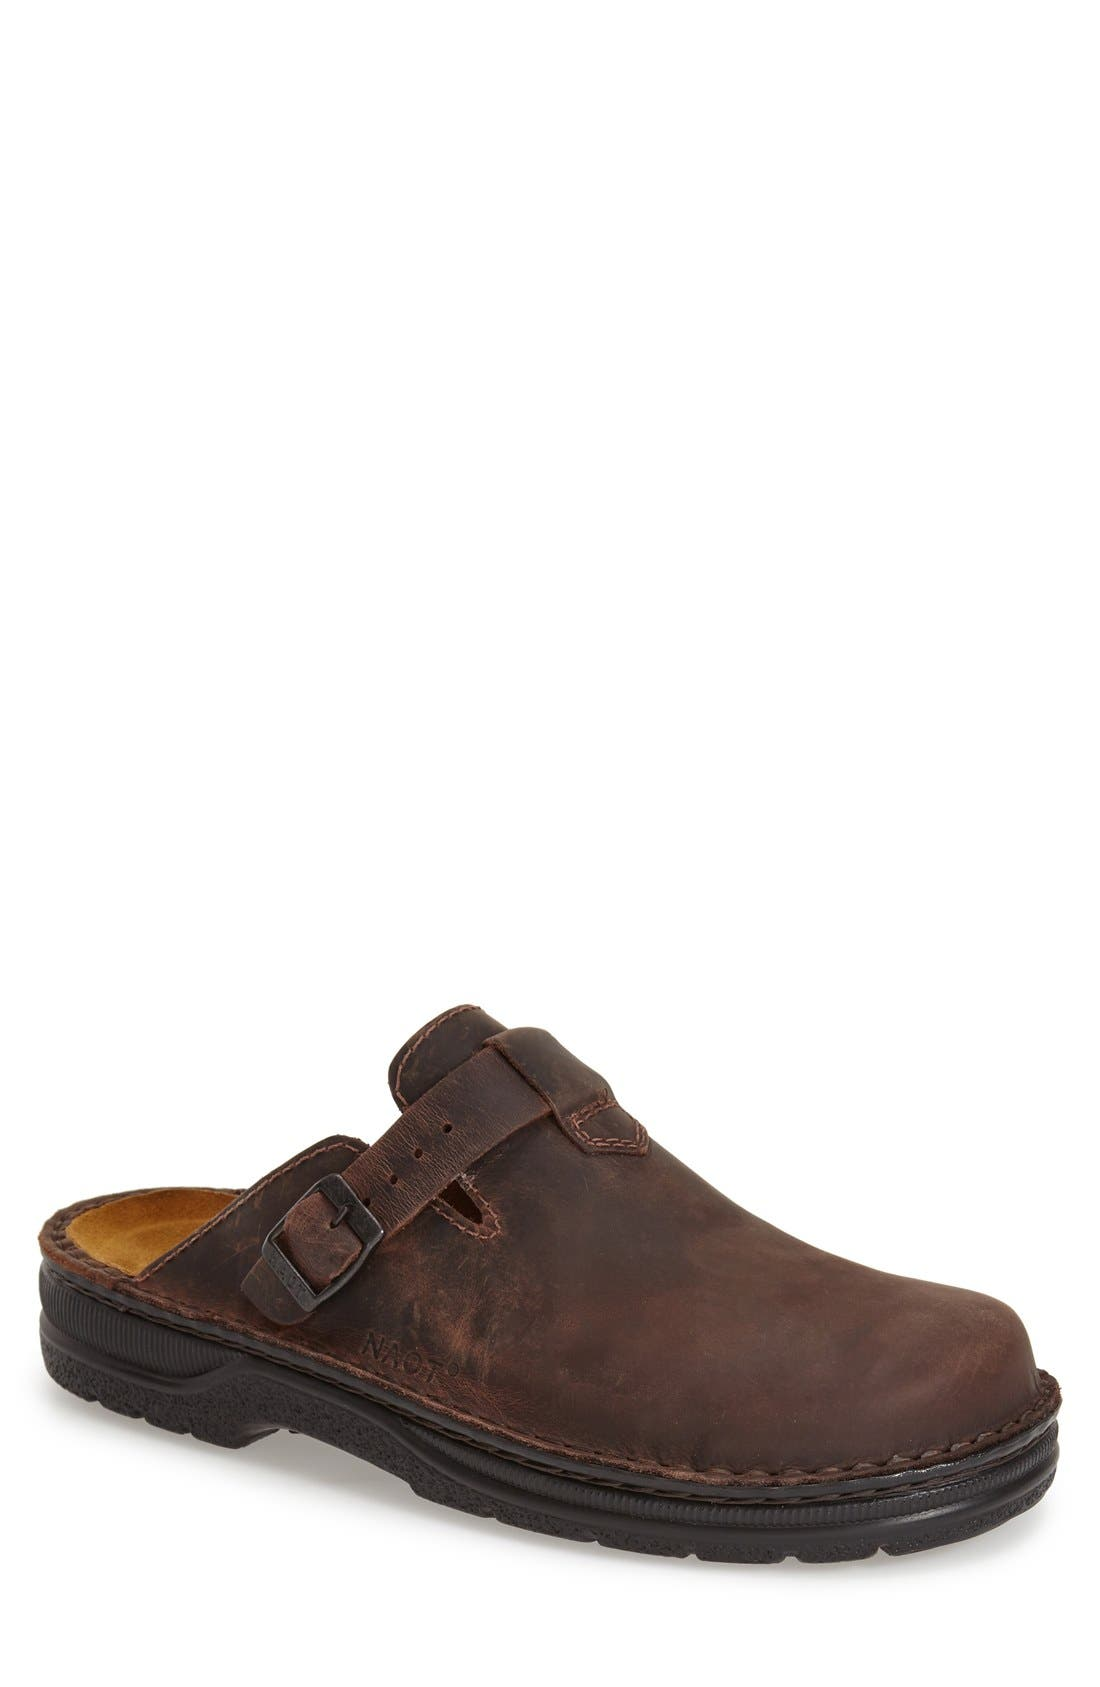 Fiord Clog,                         Main,                         color, Brown Leather